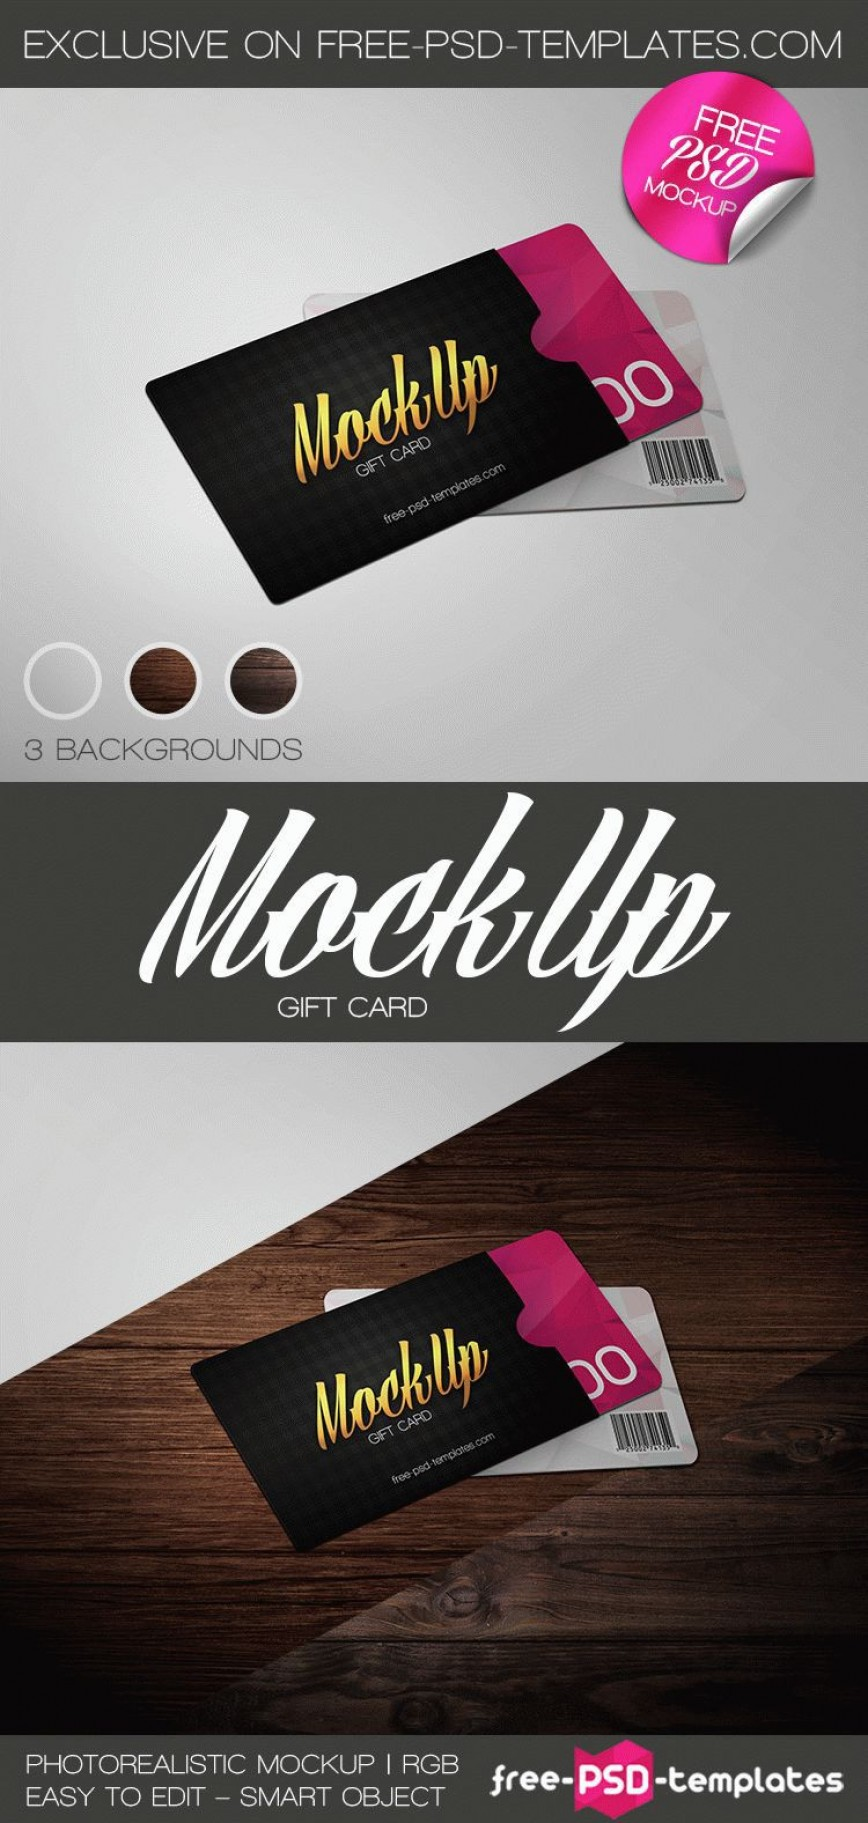 001 Simple Gift Card Template Psd Image  Photoshop Free Christma